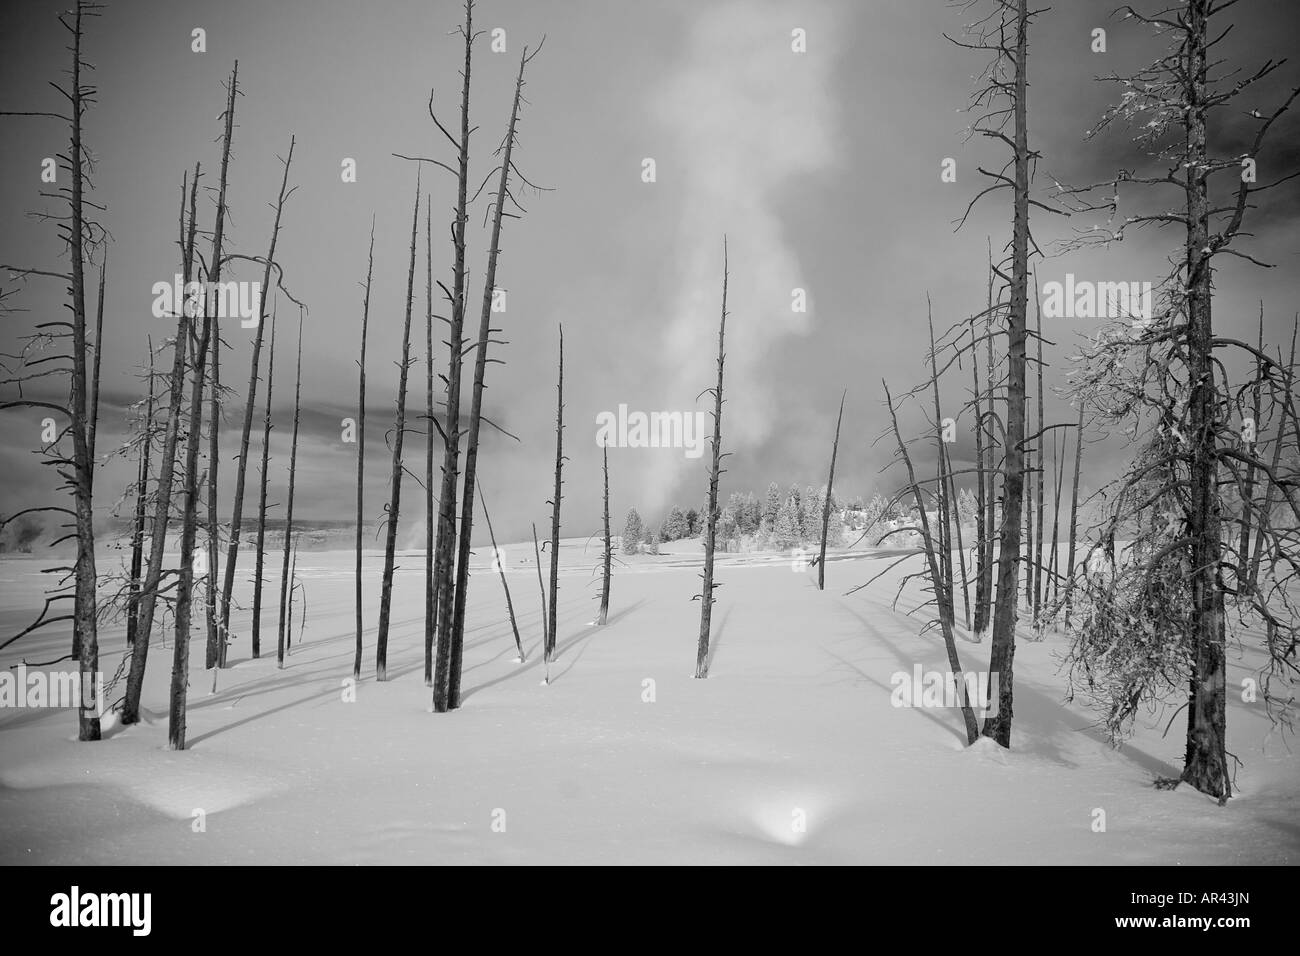 Yellowstone National Park in winter snow with hoar frost covered dead trees at Midway Geyser Basin - Stock Image